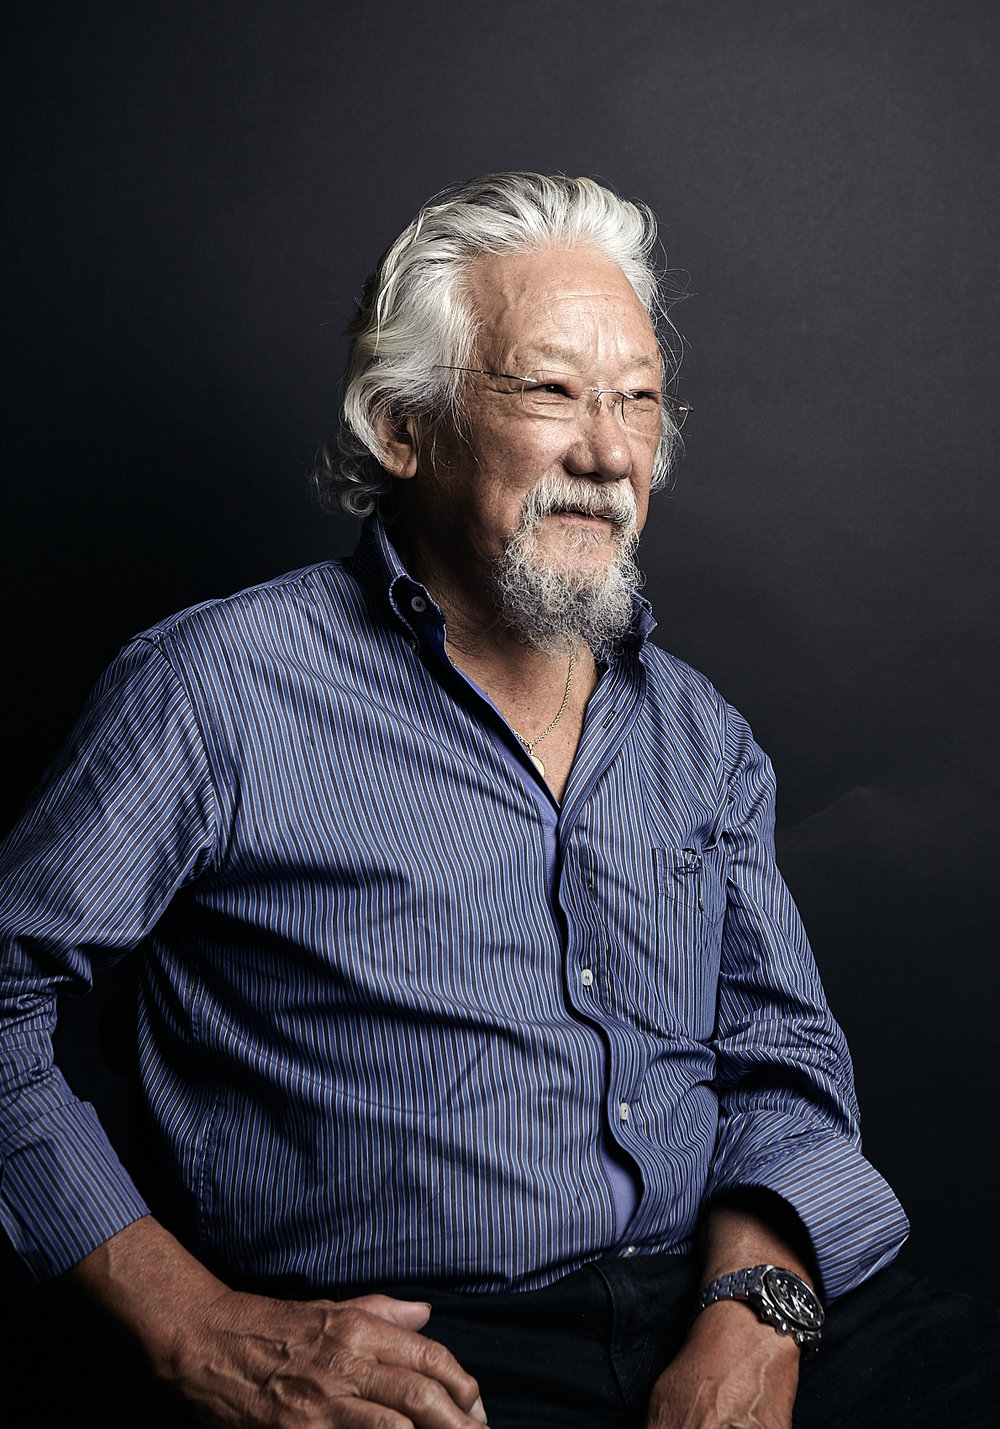 David Suzuki Vancouver Portrait Photographer.jpg